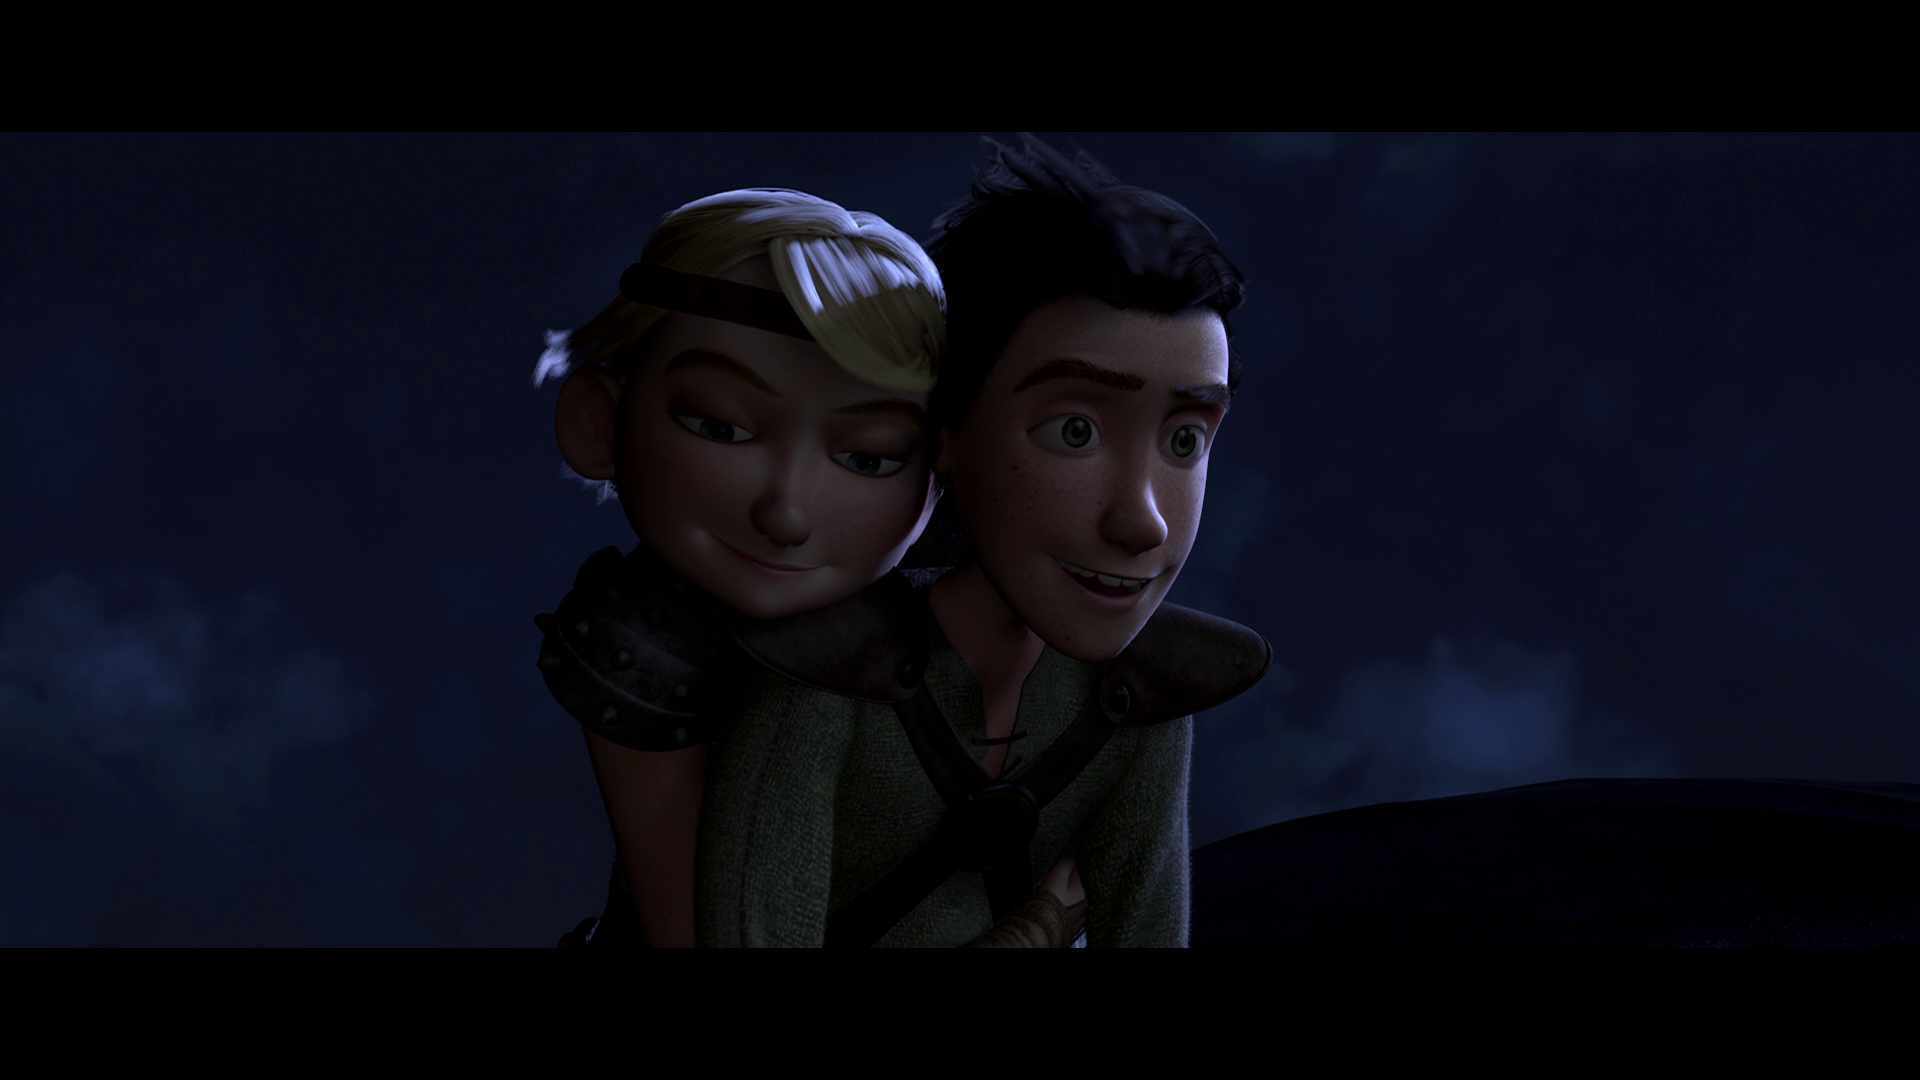 Hiccup and Astrid love